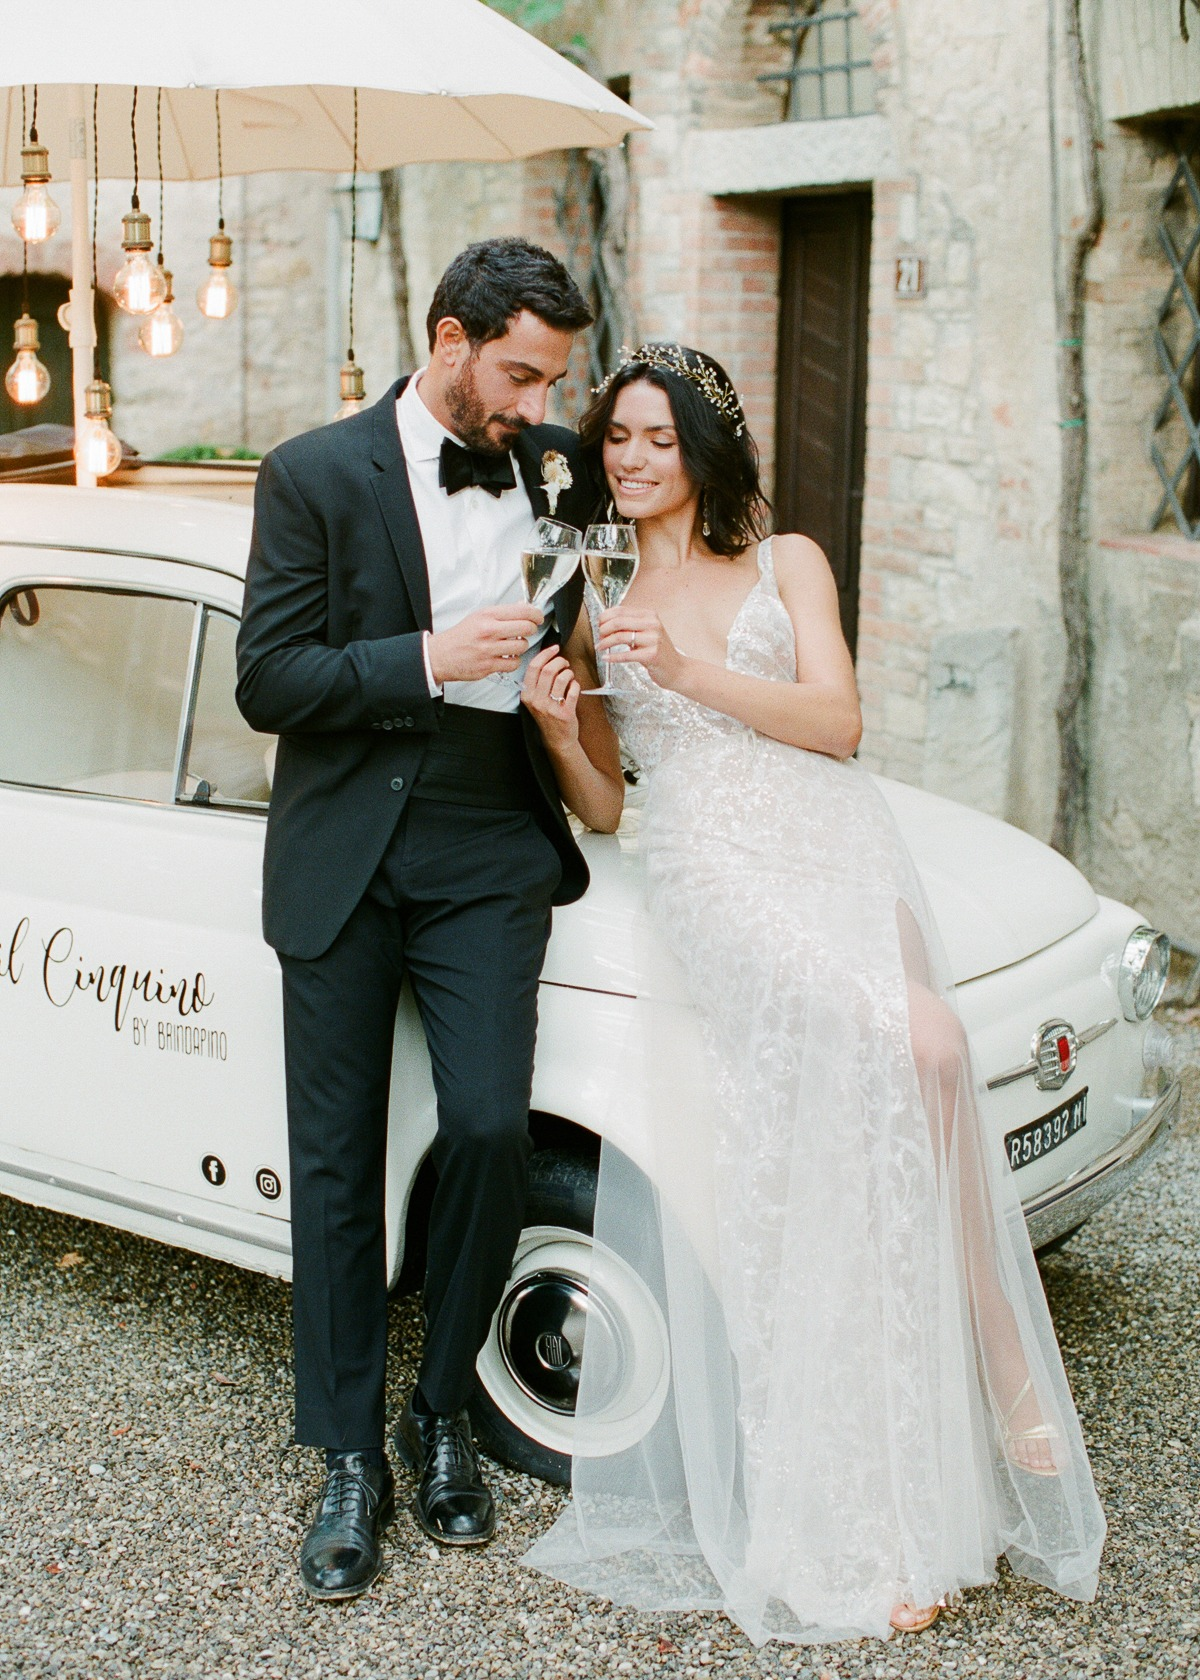 Redefining Sustainability One Wedding At A Time